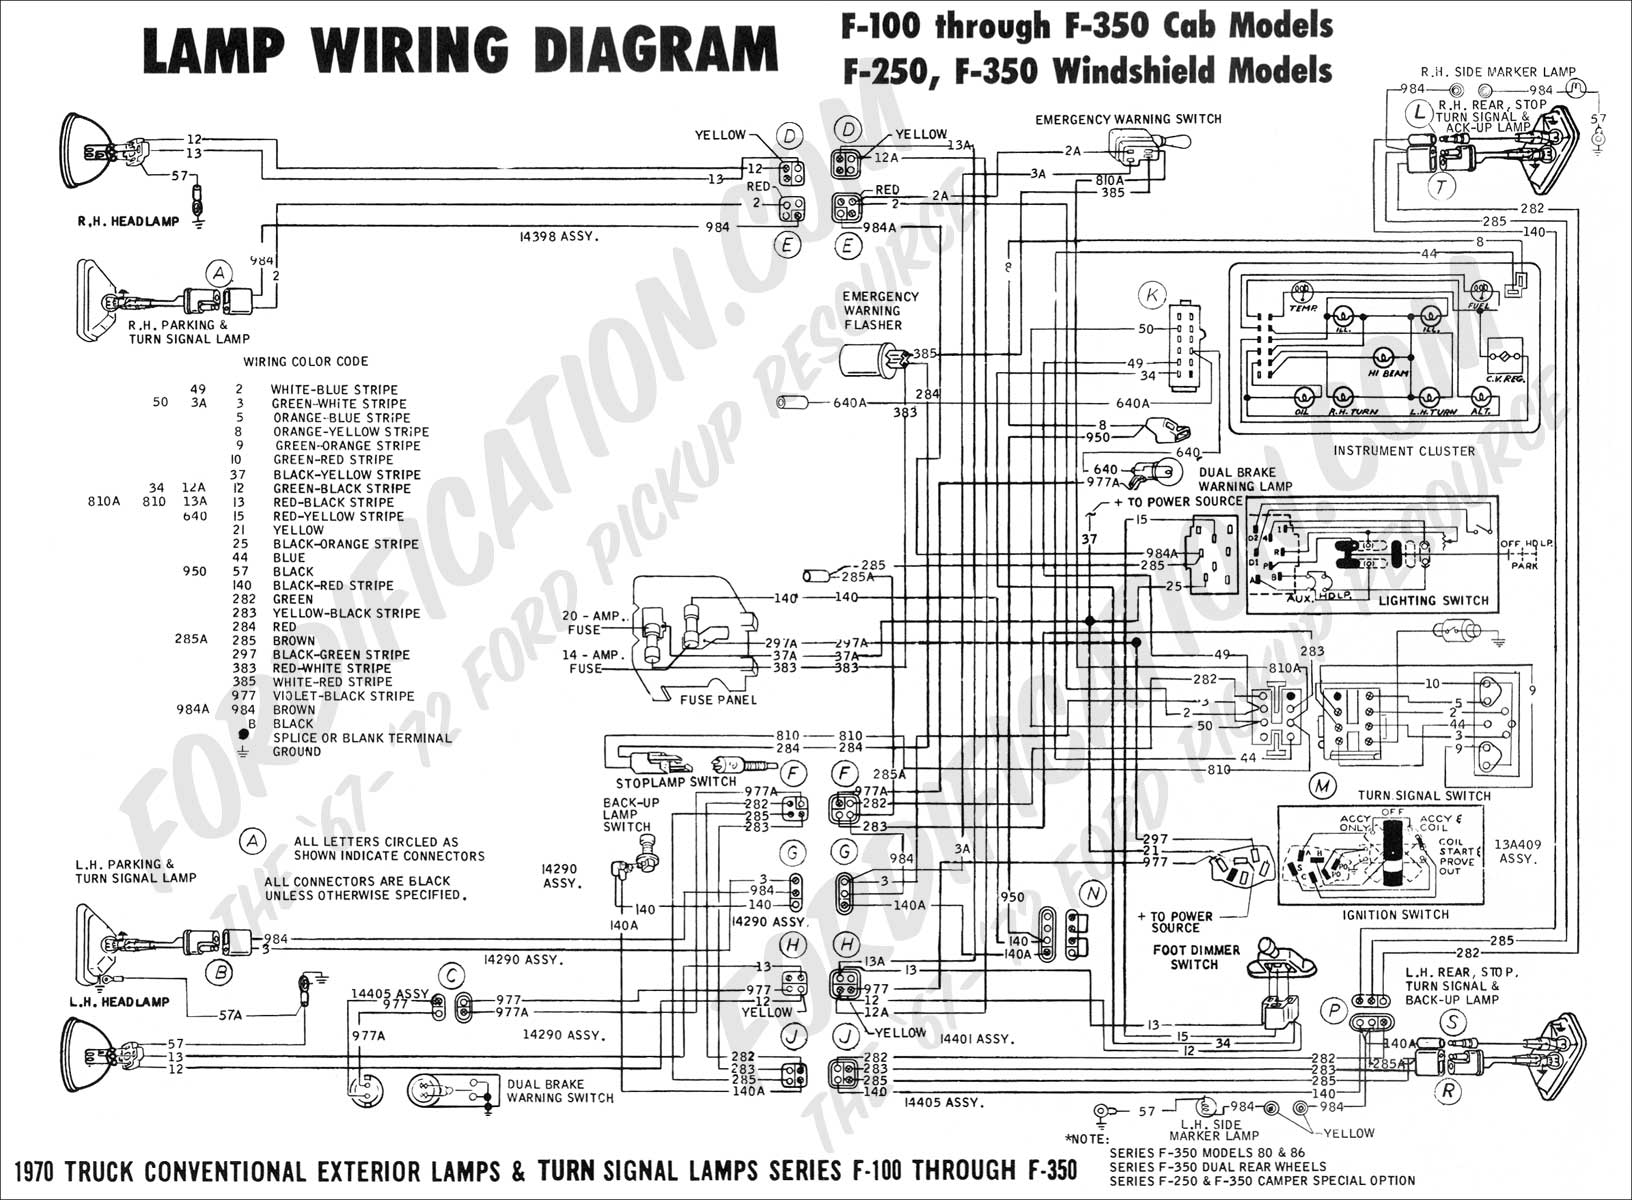 1291890 Turn Signal Cam Wiring on 1999 lincoln town car fuse box diagram